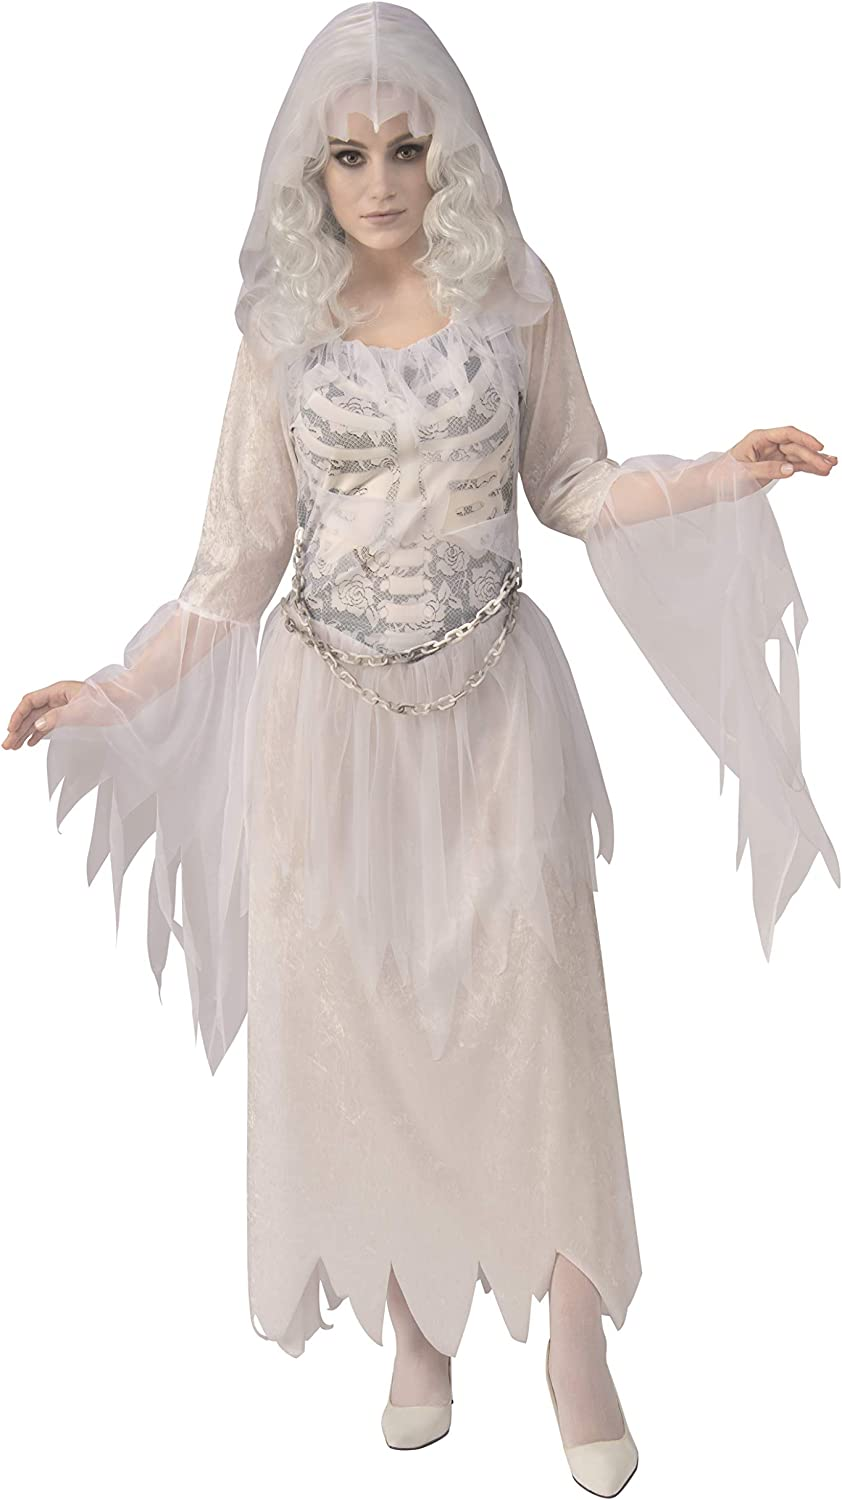 Rubie's Ghostly Woman Costume for Adults